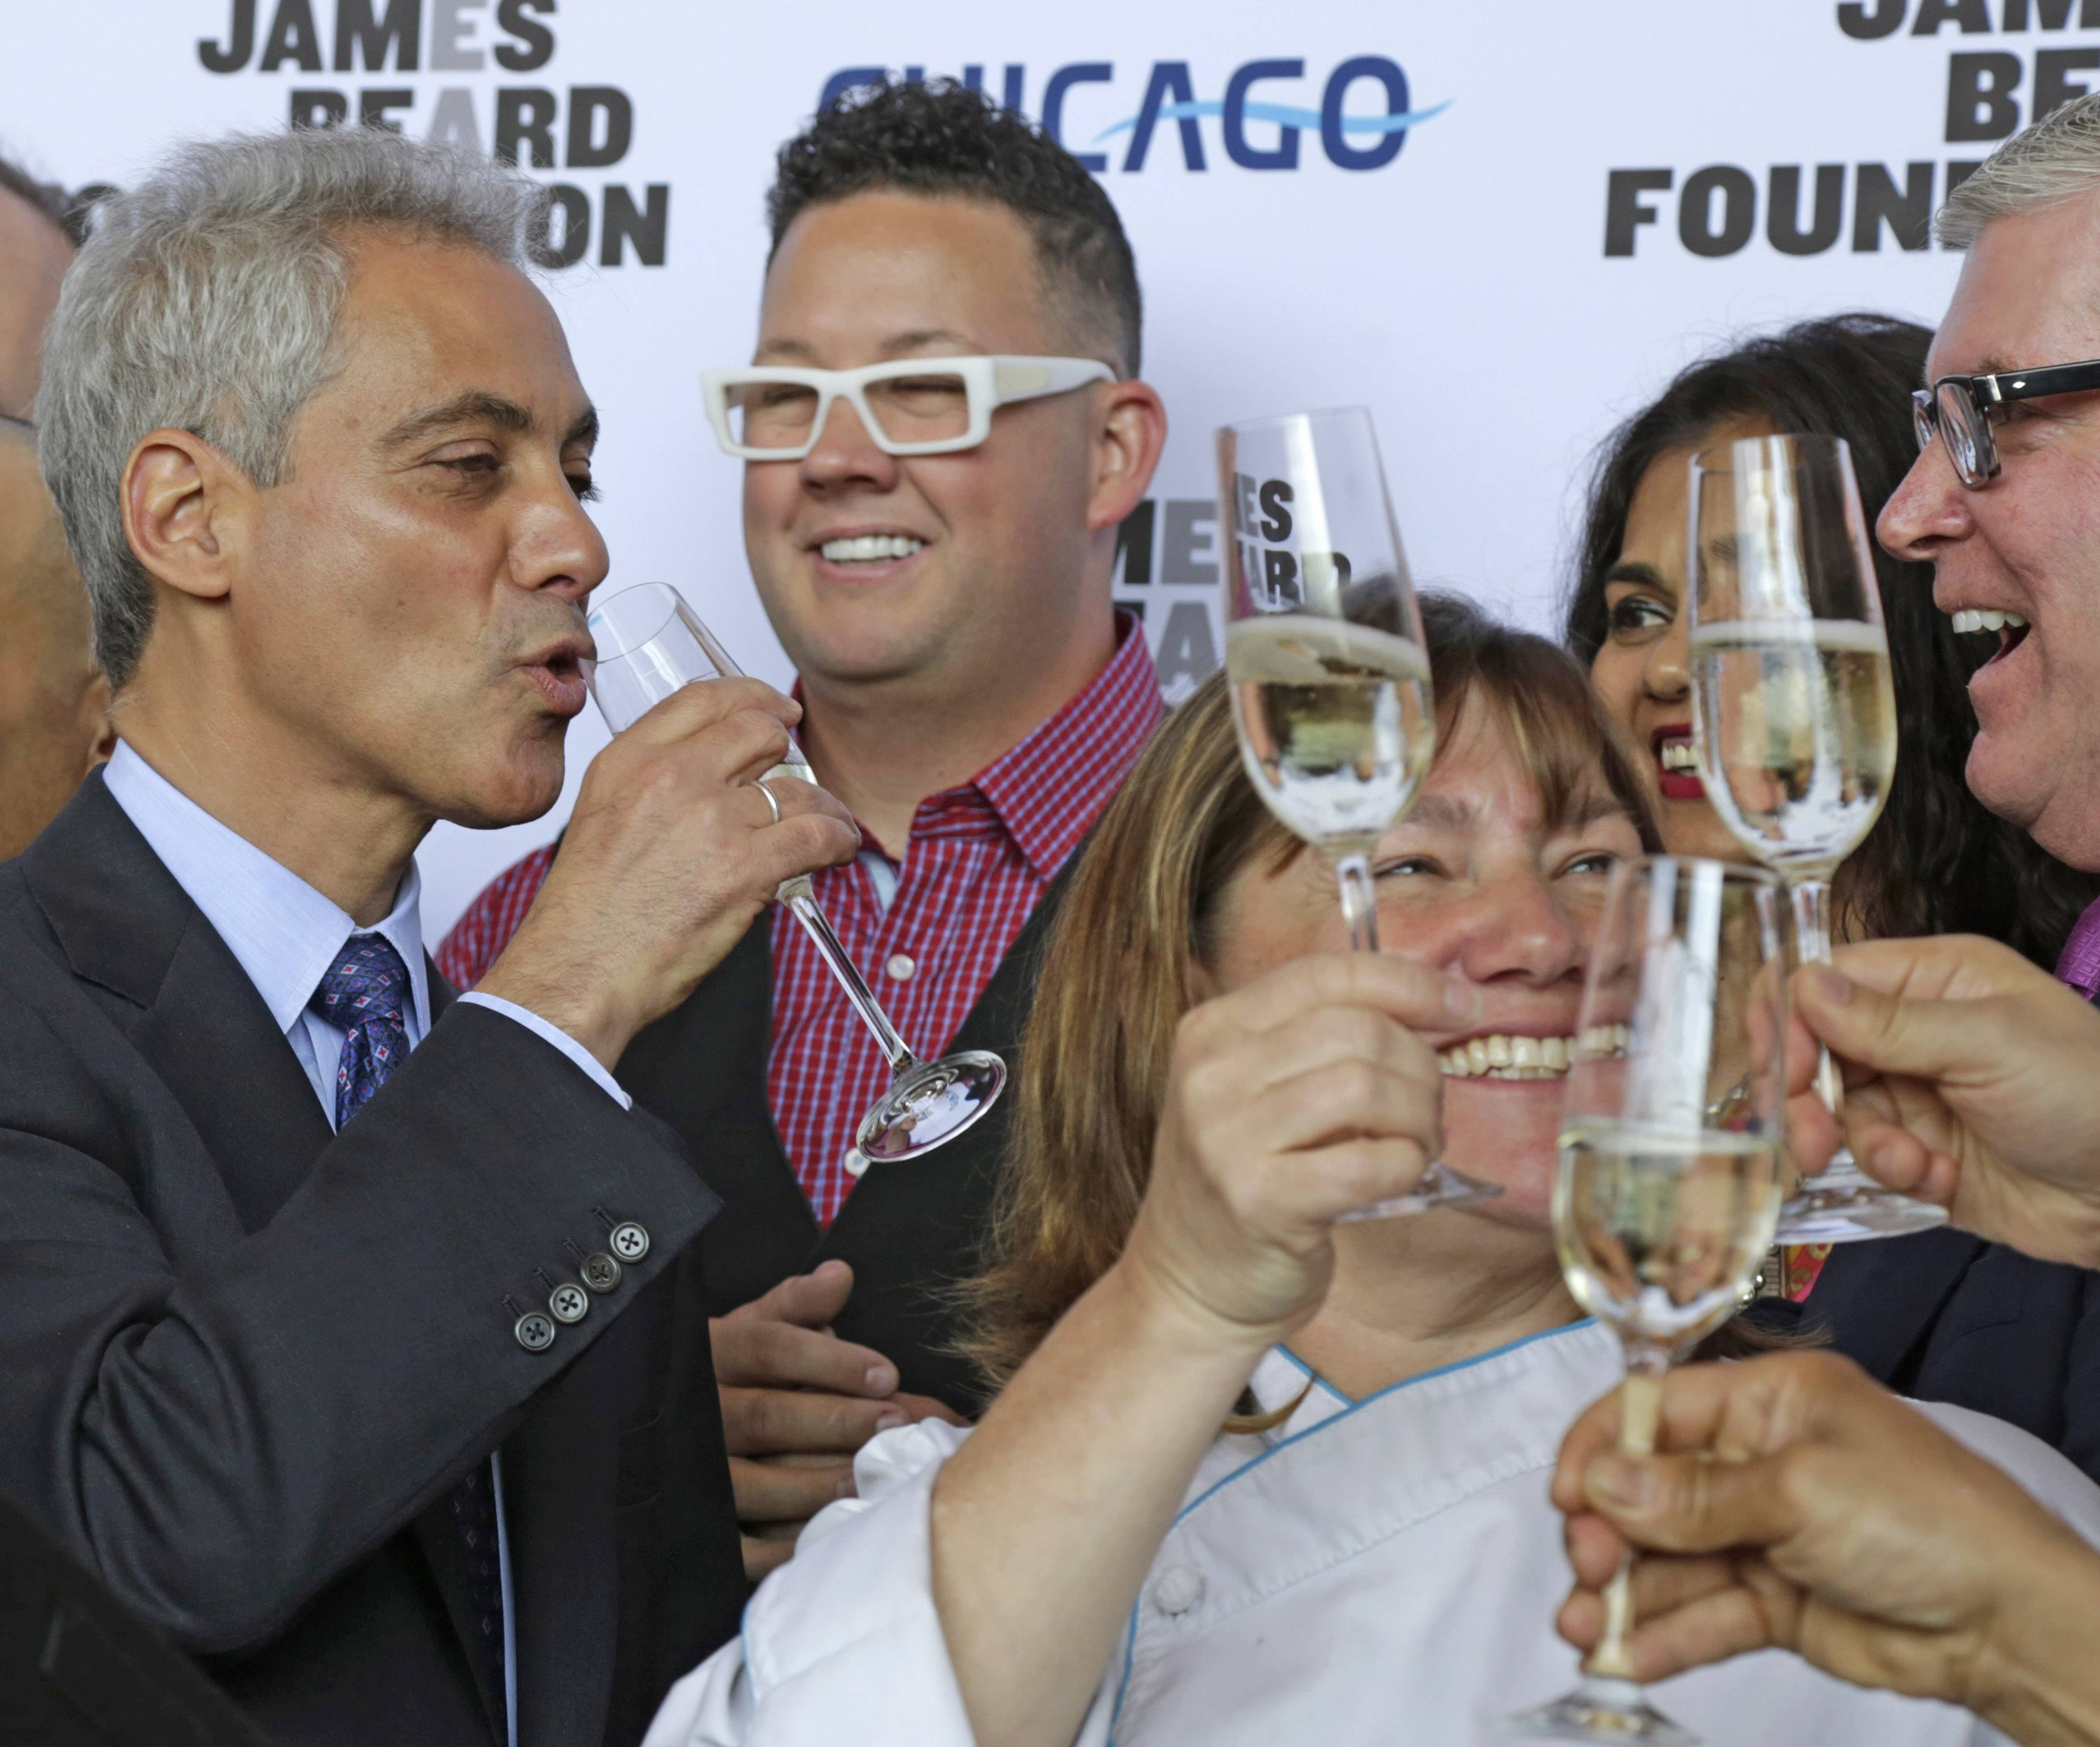 Chicago Mayor Rahm Emanuel, left, toasts with some of the cities top chefs including Grahm Elliott, center, and Gale Gand, lower right, at a news conference Tuesday in Chicago. The James Beard Foundation said Tuesday that after 24 years in the New York, the foundation's awards ceremony is moving to the Windy City next year. The foundation — which is based in New York and honors the nation's best chefs, restaurants and food media — says several cities had asked to host the annual awards ceremony, but Chicago's offer of marketing and sponsorship support was too good to turn down.